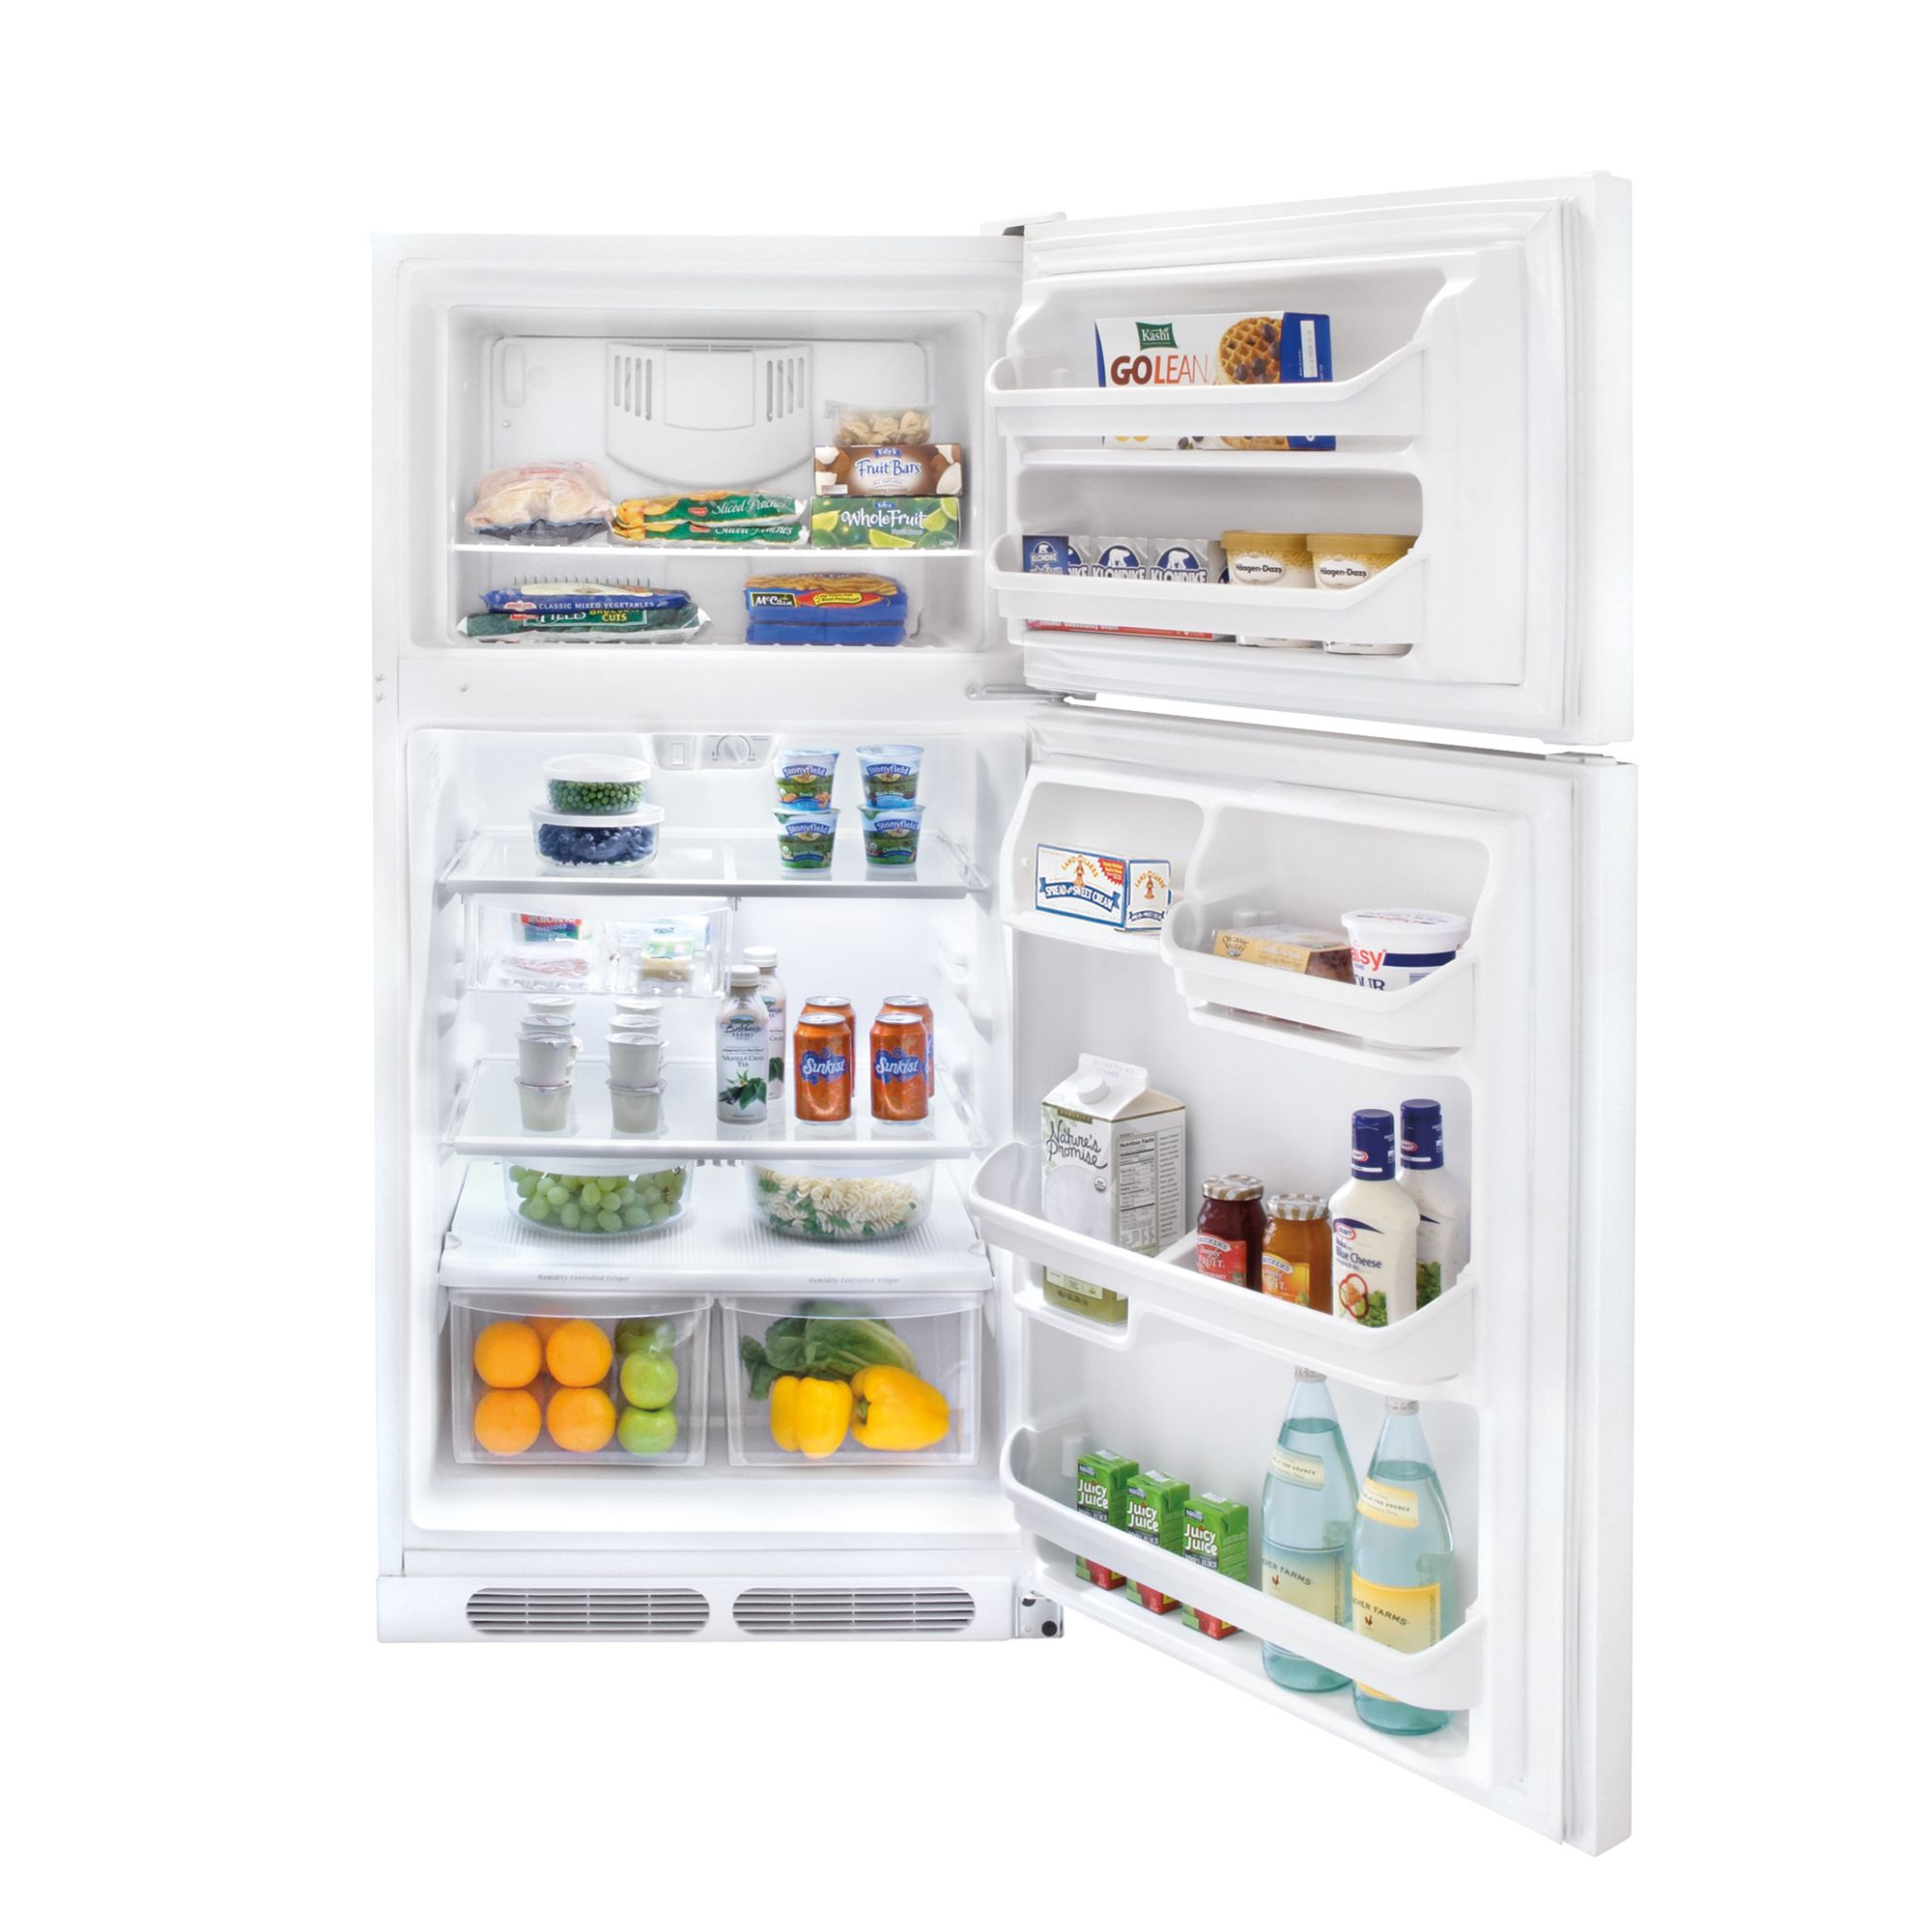 Frigidaire 14.8 cu. ft. Top Freezer Refrigerator